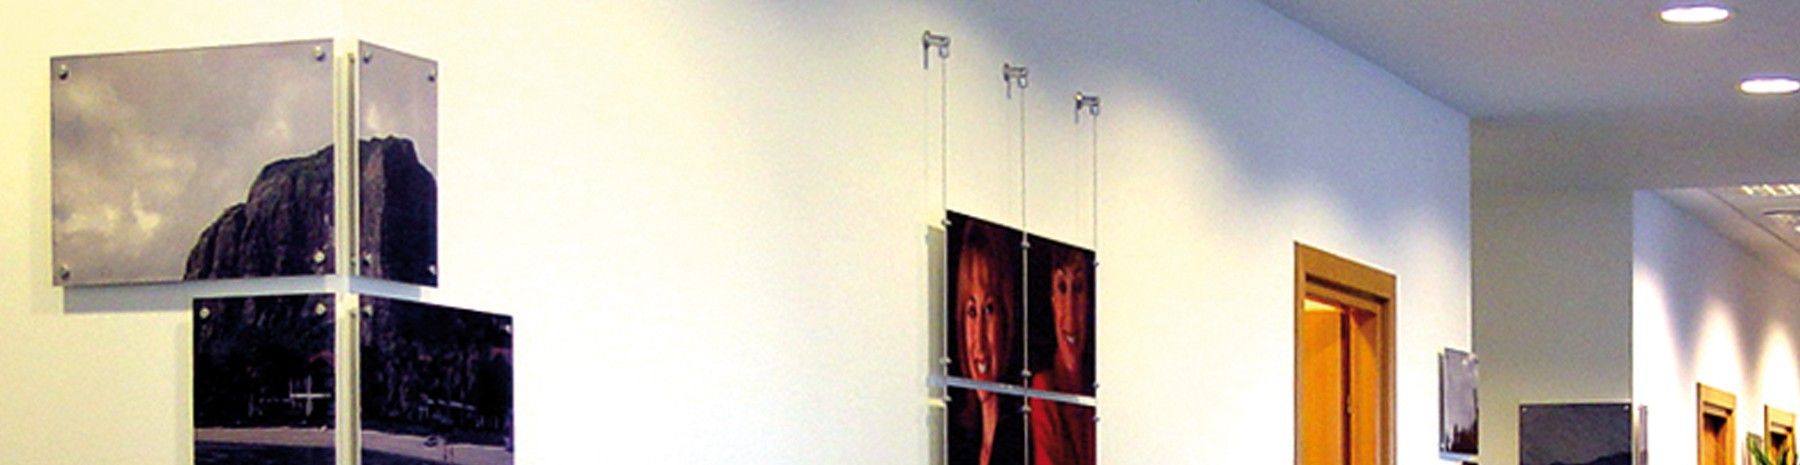 Shelf Support made of Aluminium for suspended display system